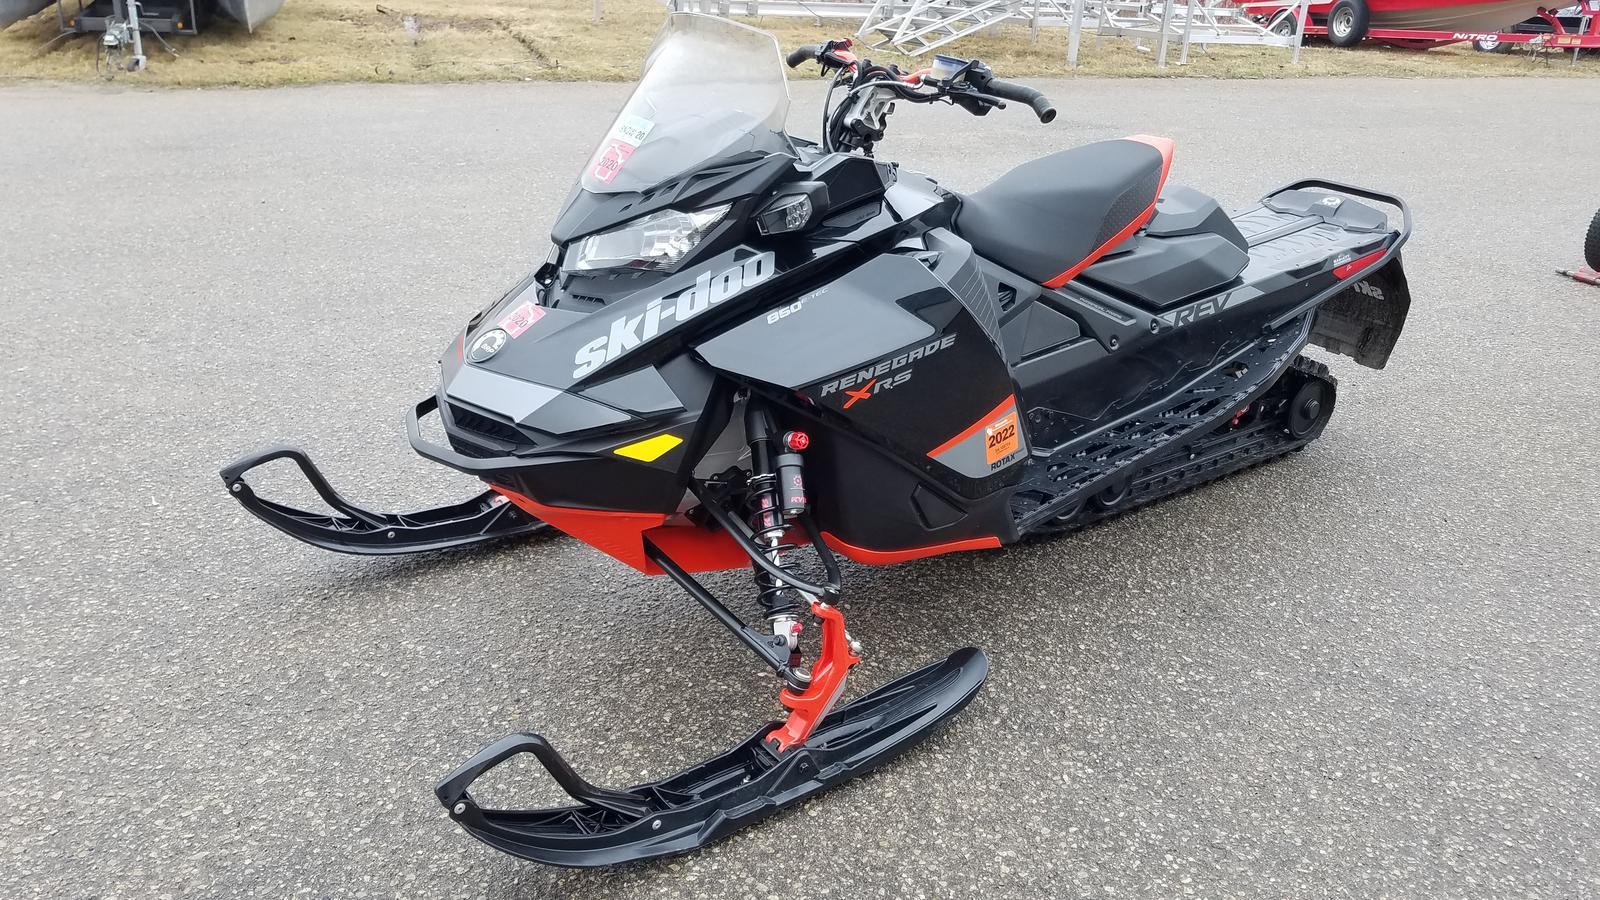 Used Snowmobile Mad City Power Sports Deforest Wi 888 Mad City